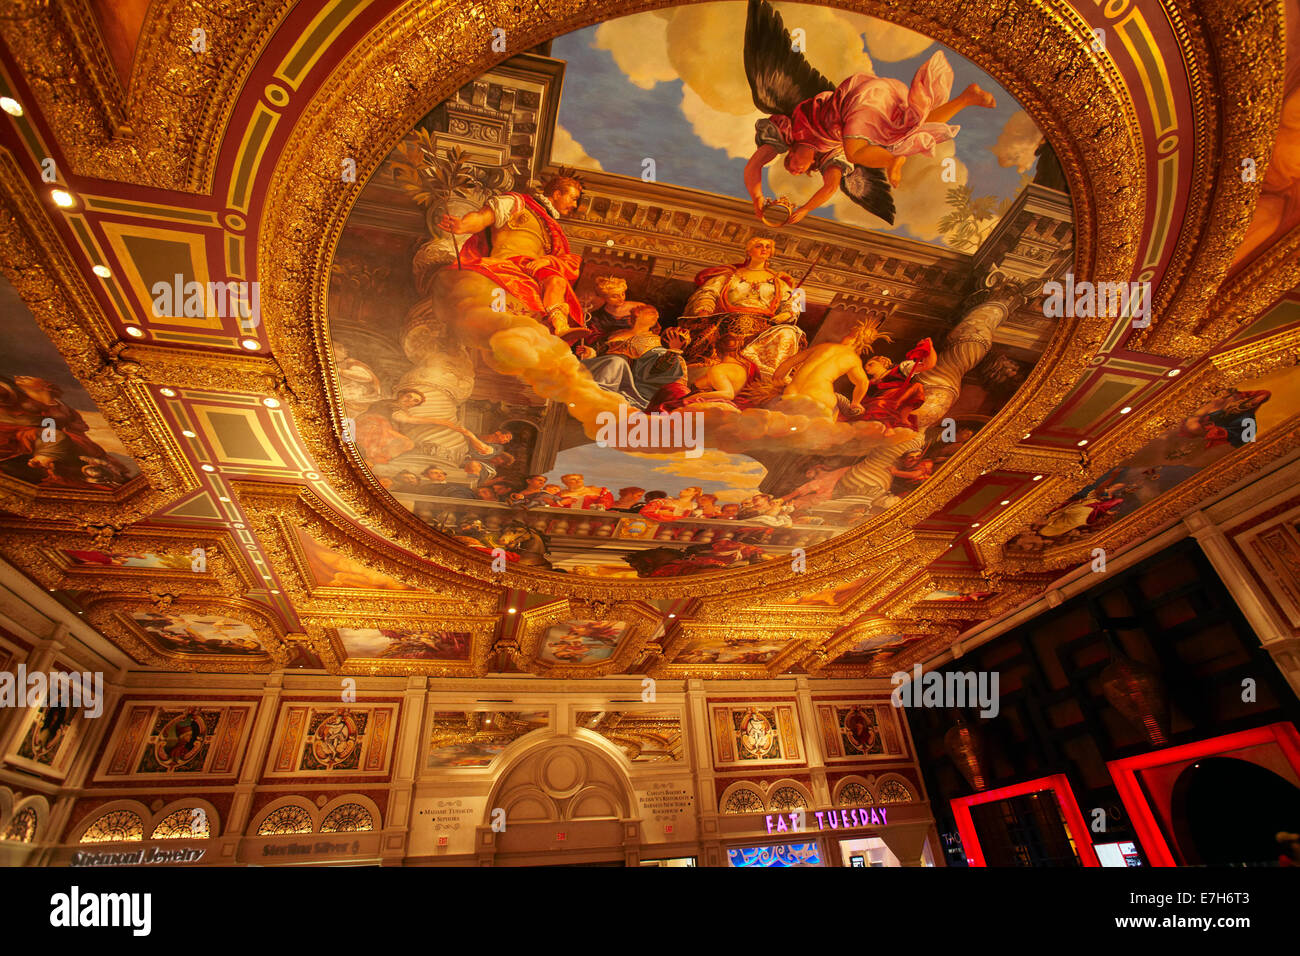 Grand Canal Shoppes entrance hall ceiling, The Venetian Resort Hotel Casino, Las Vegas, Nevada, USA - Stock Image